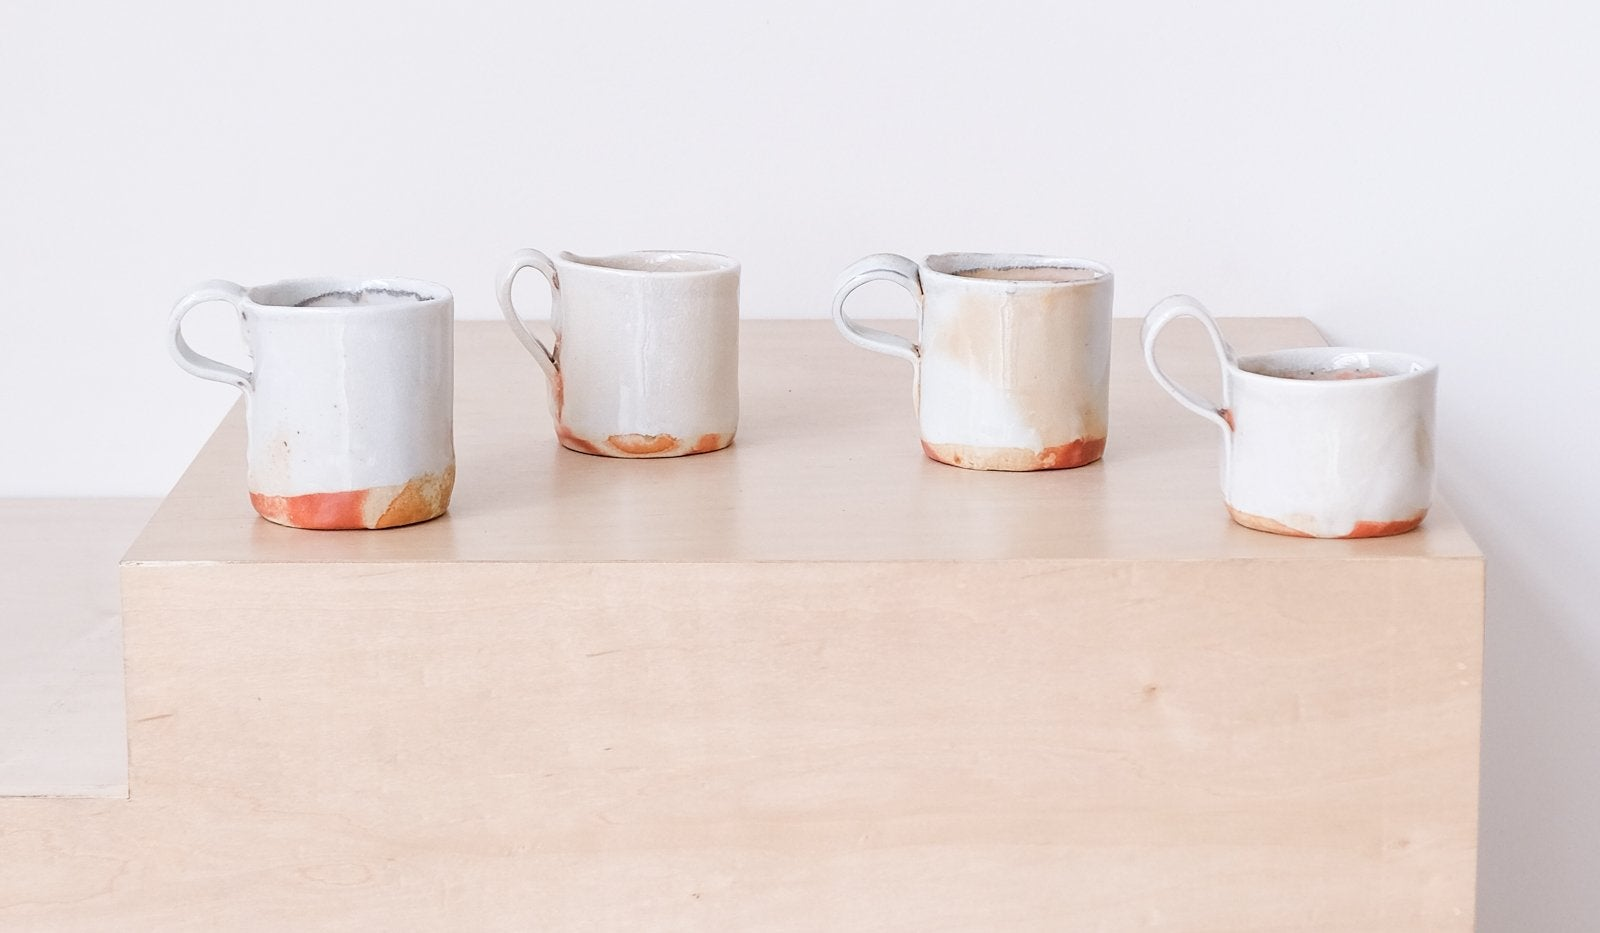 MONDAYS PROJECTS WOOD FIRED PORCELAIN MUGS